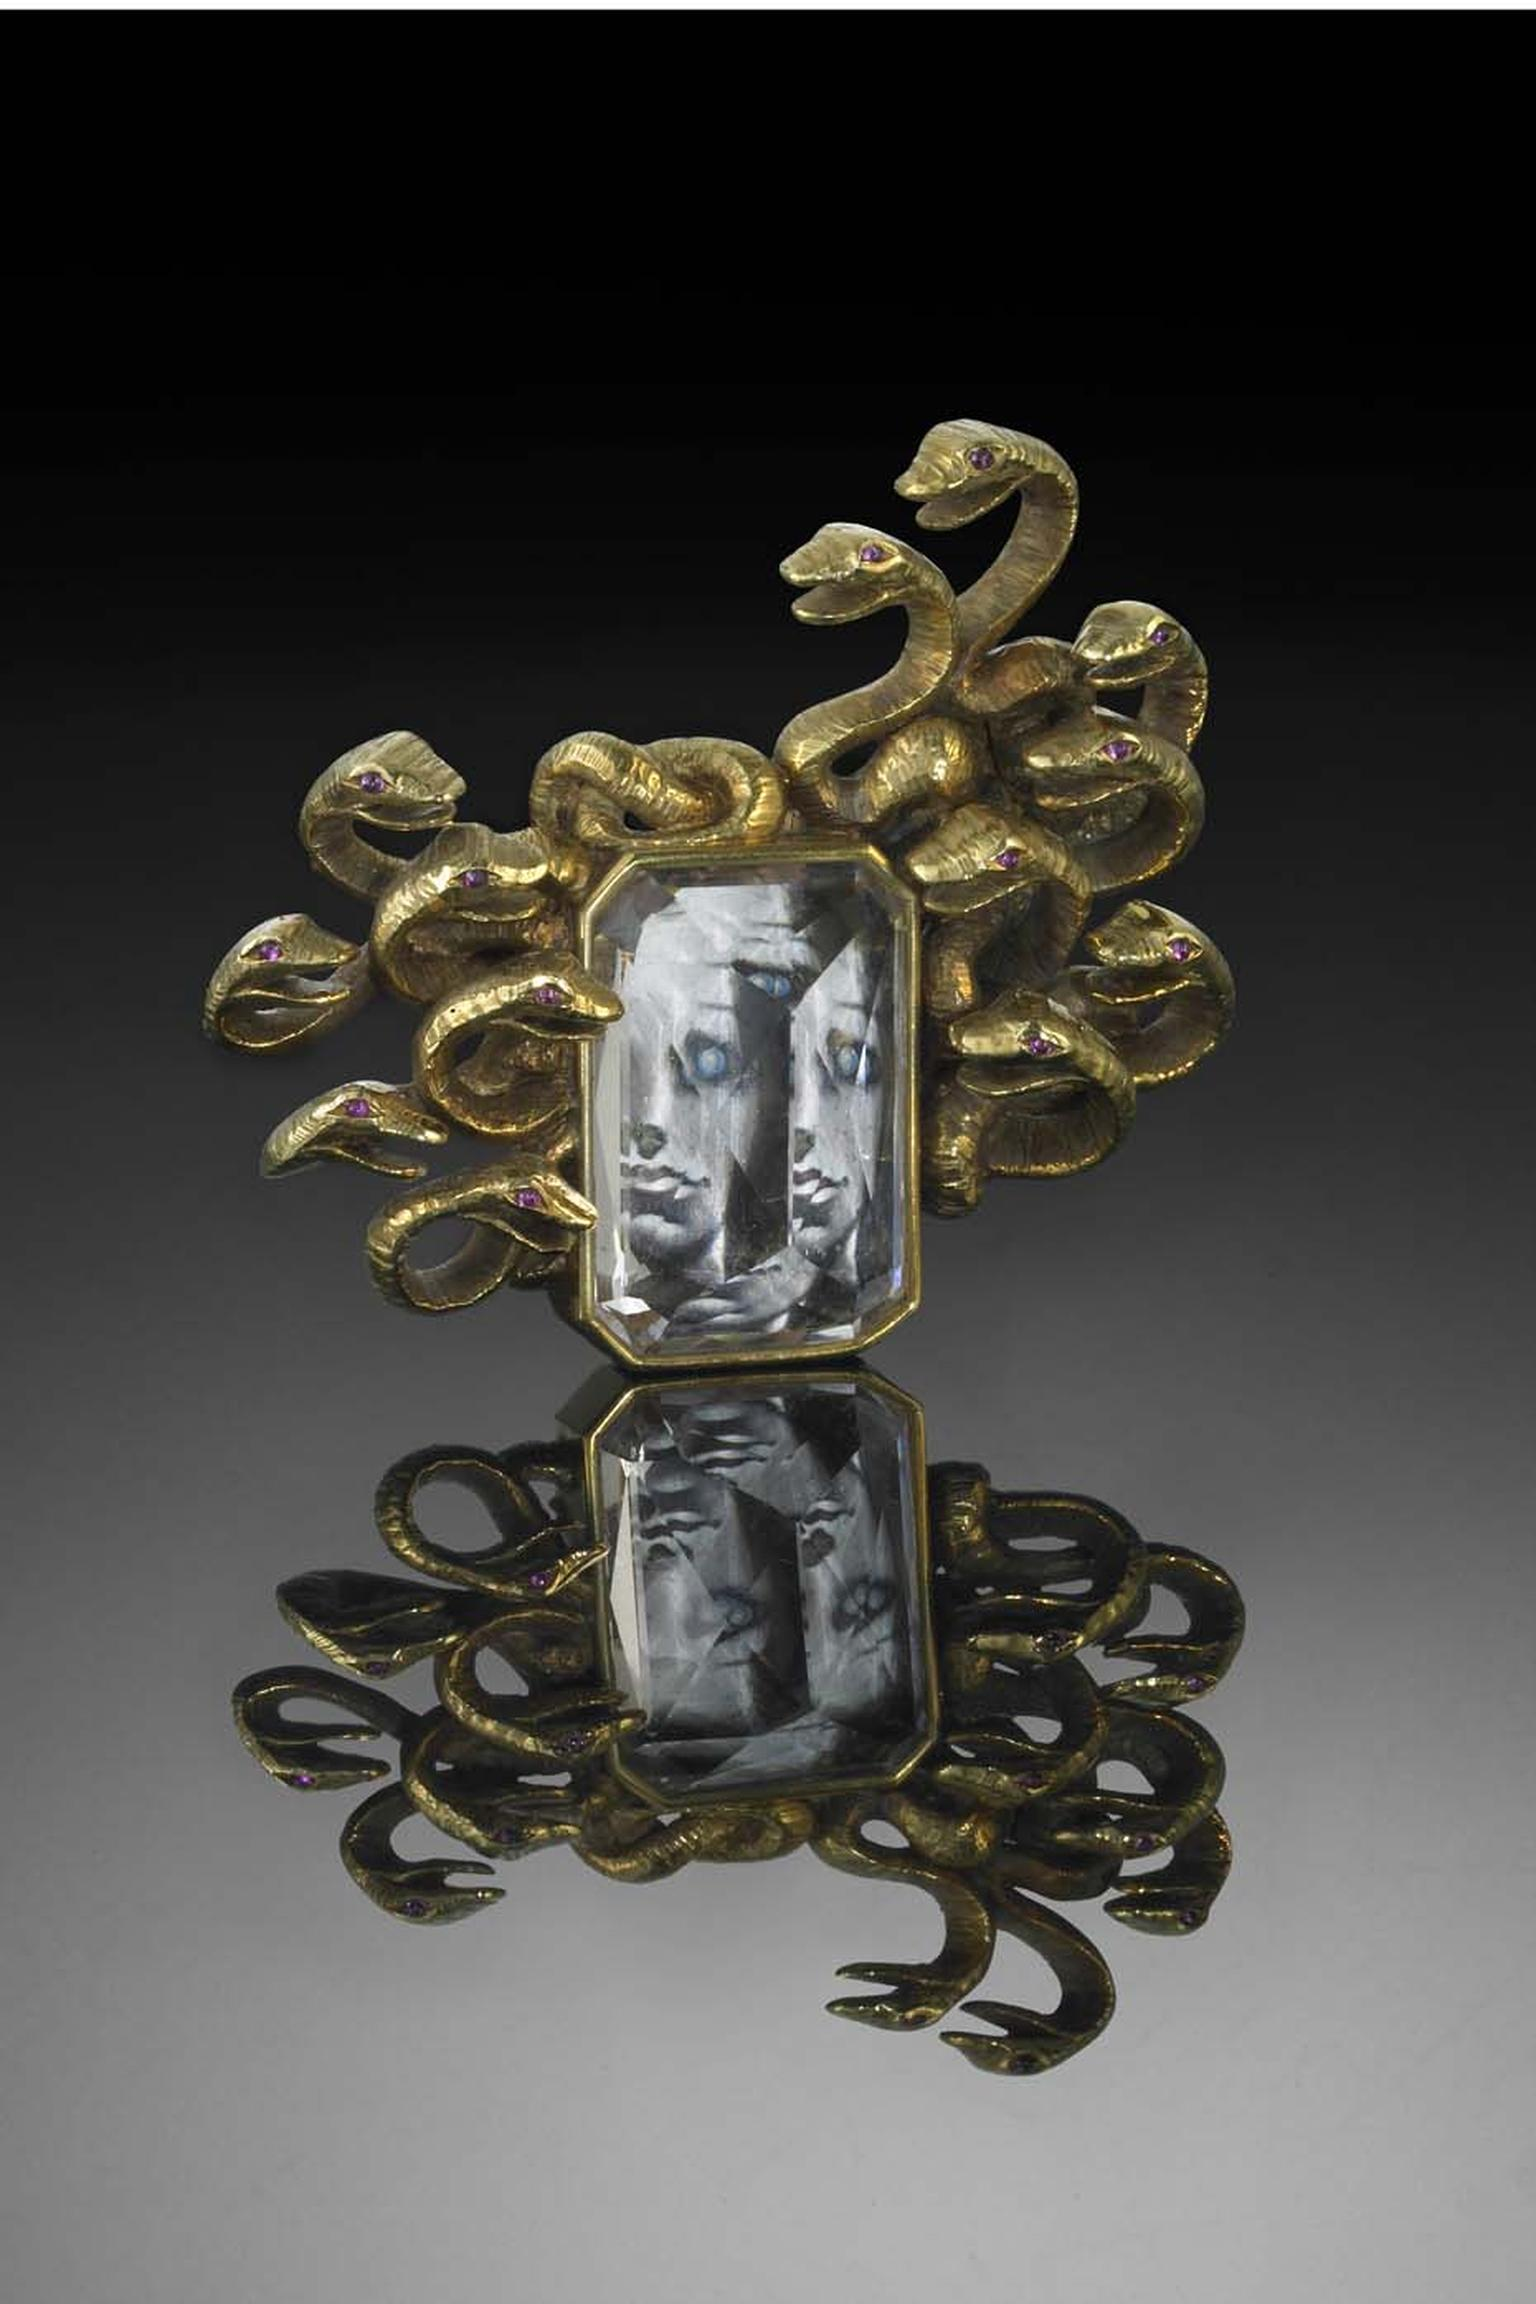 Verdura and Salvador Dali's 1941 Medusa collaboration: a gold, morganite and ruby brooch framing a miniature painting of Medusa.